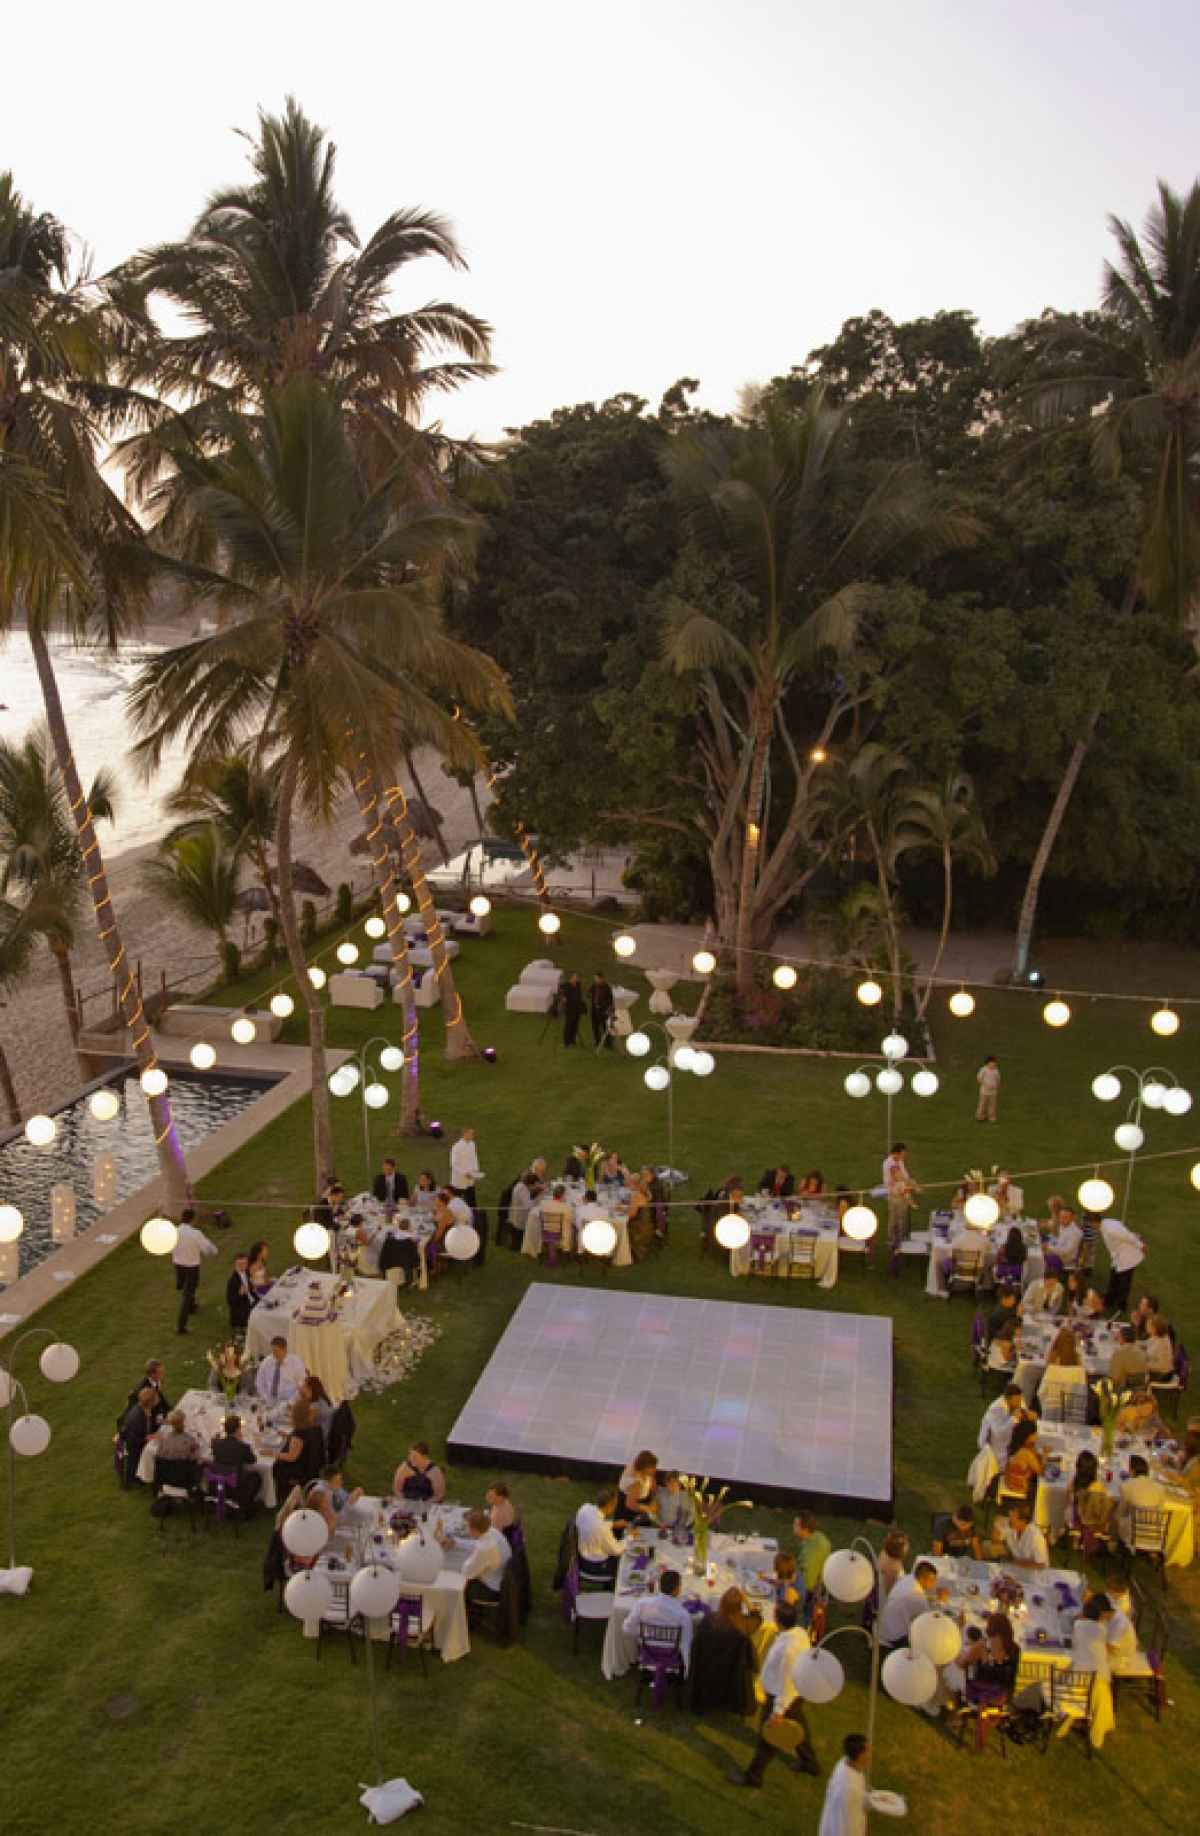 Best Places to Get Married in Mexico